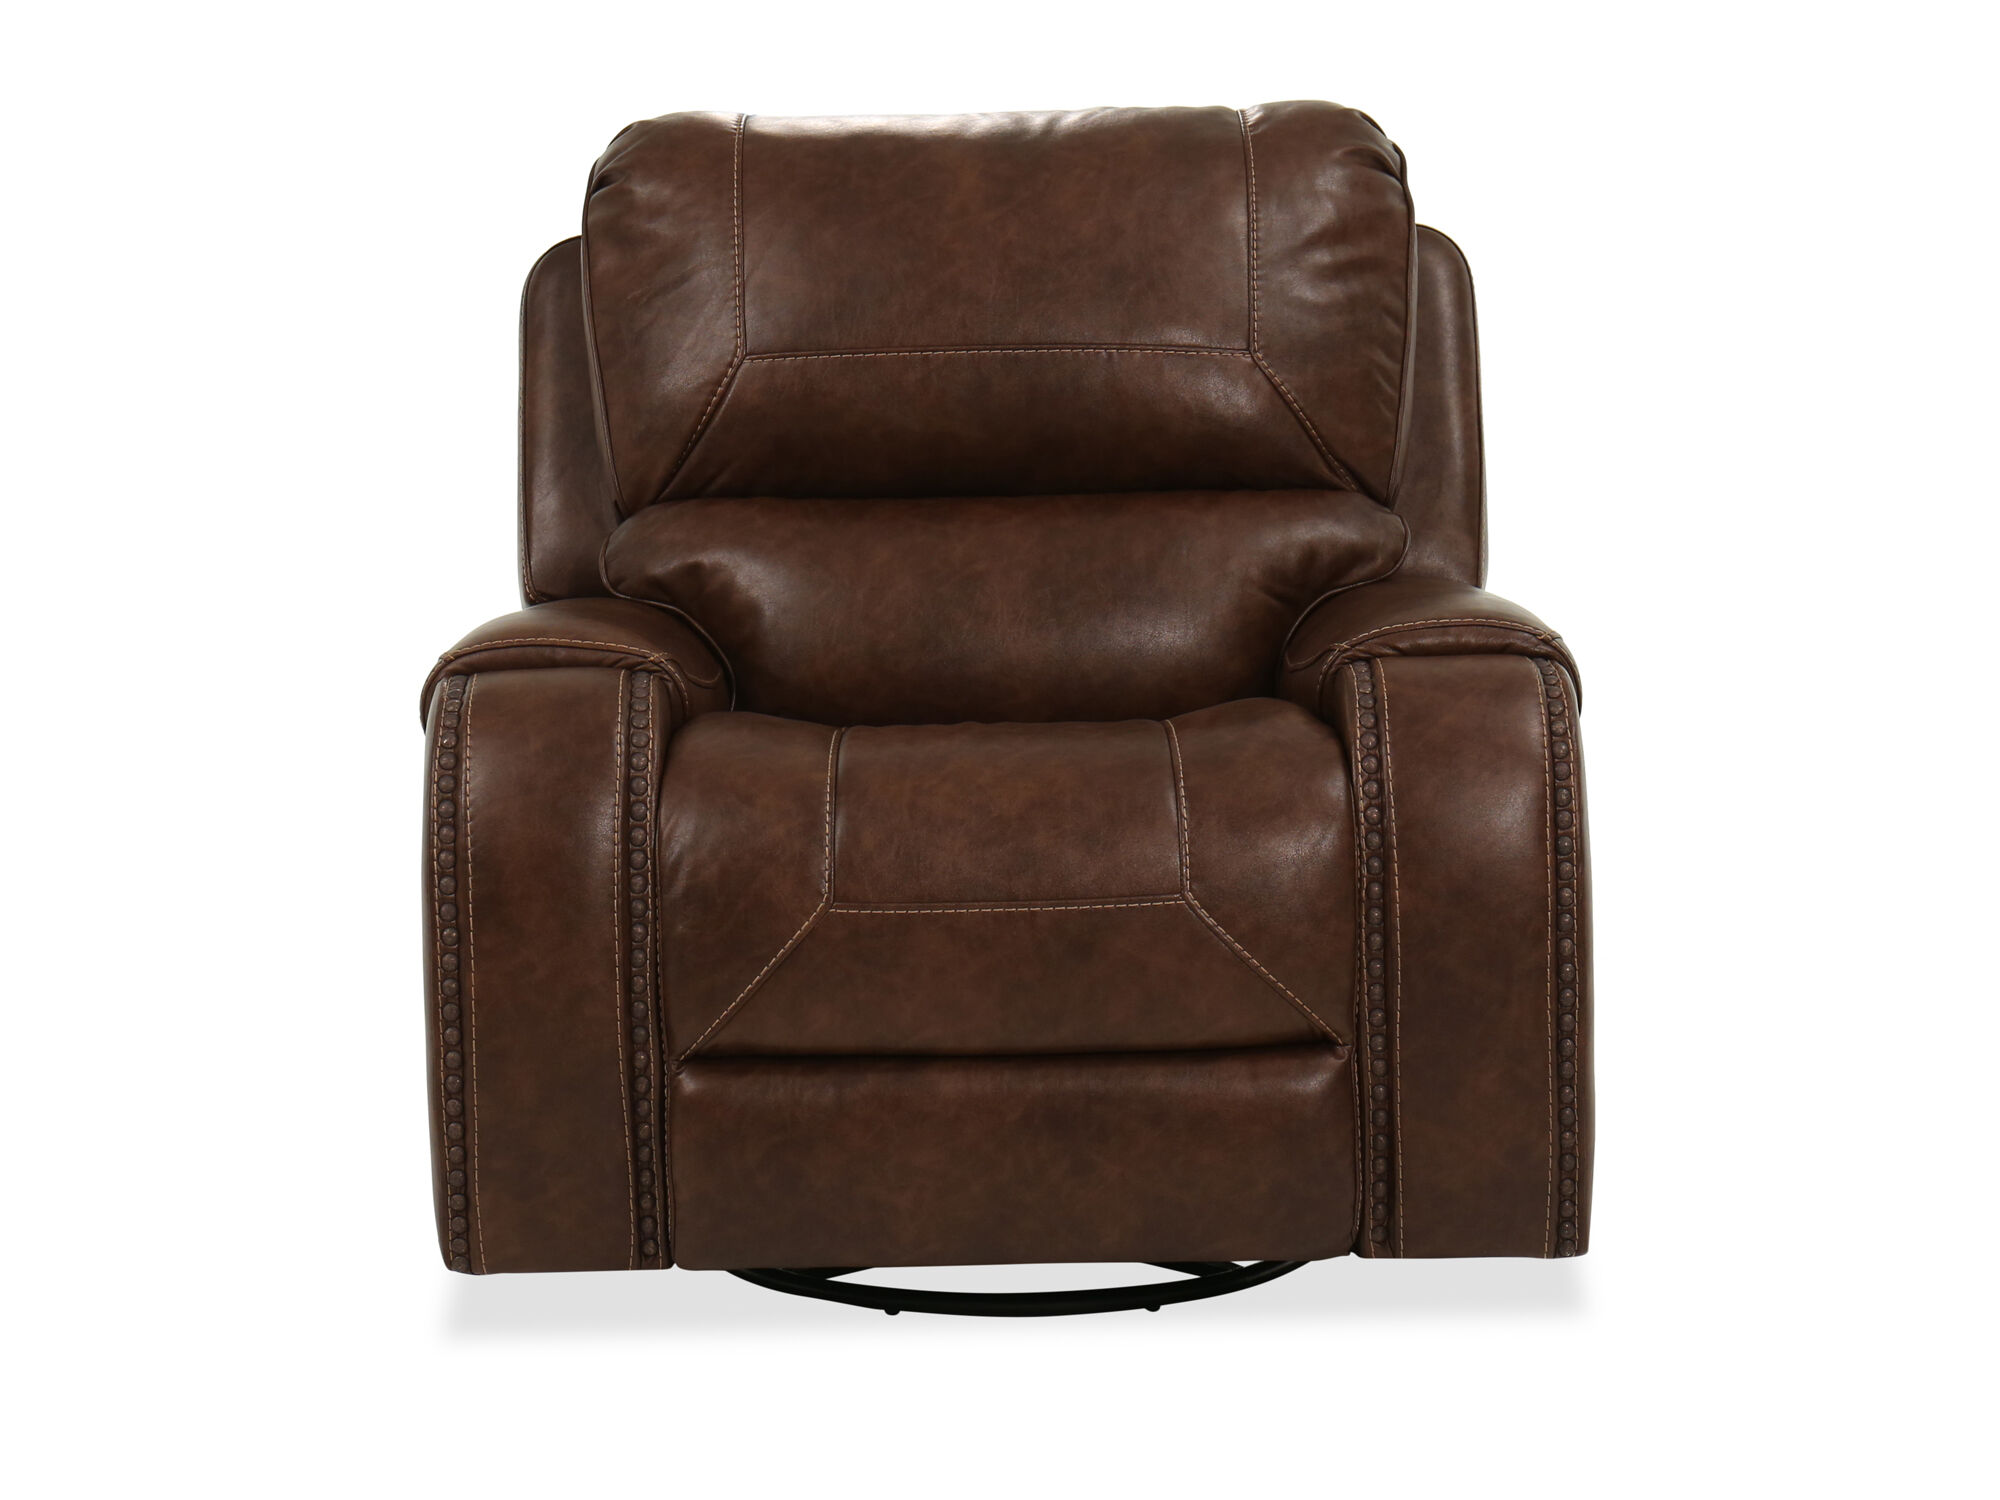 Contemporary Nailhead-Accented Swivel Glider Recliner in ...